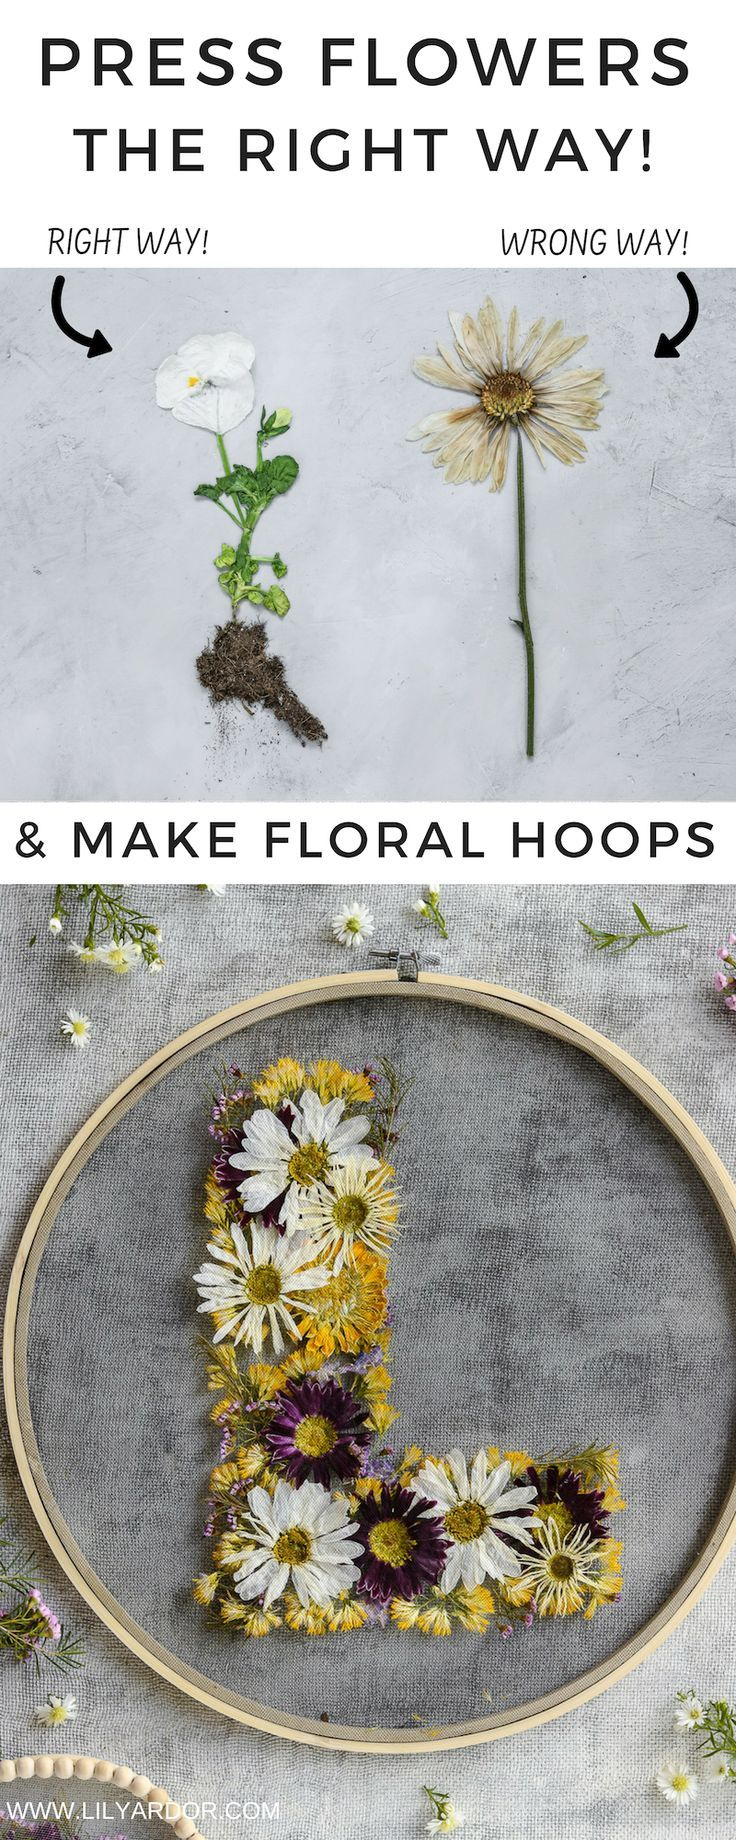 Press flowers in 3 minutes - No color loss!